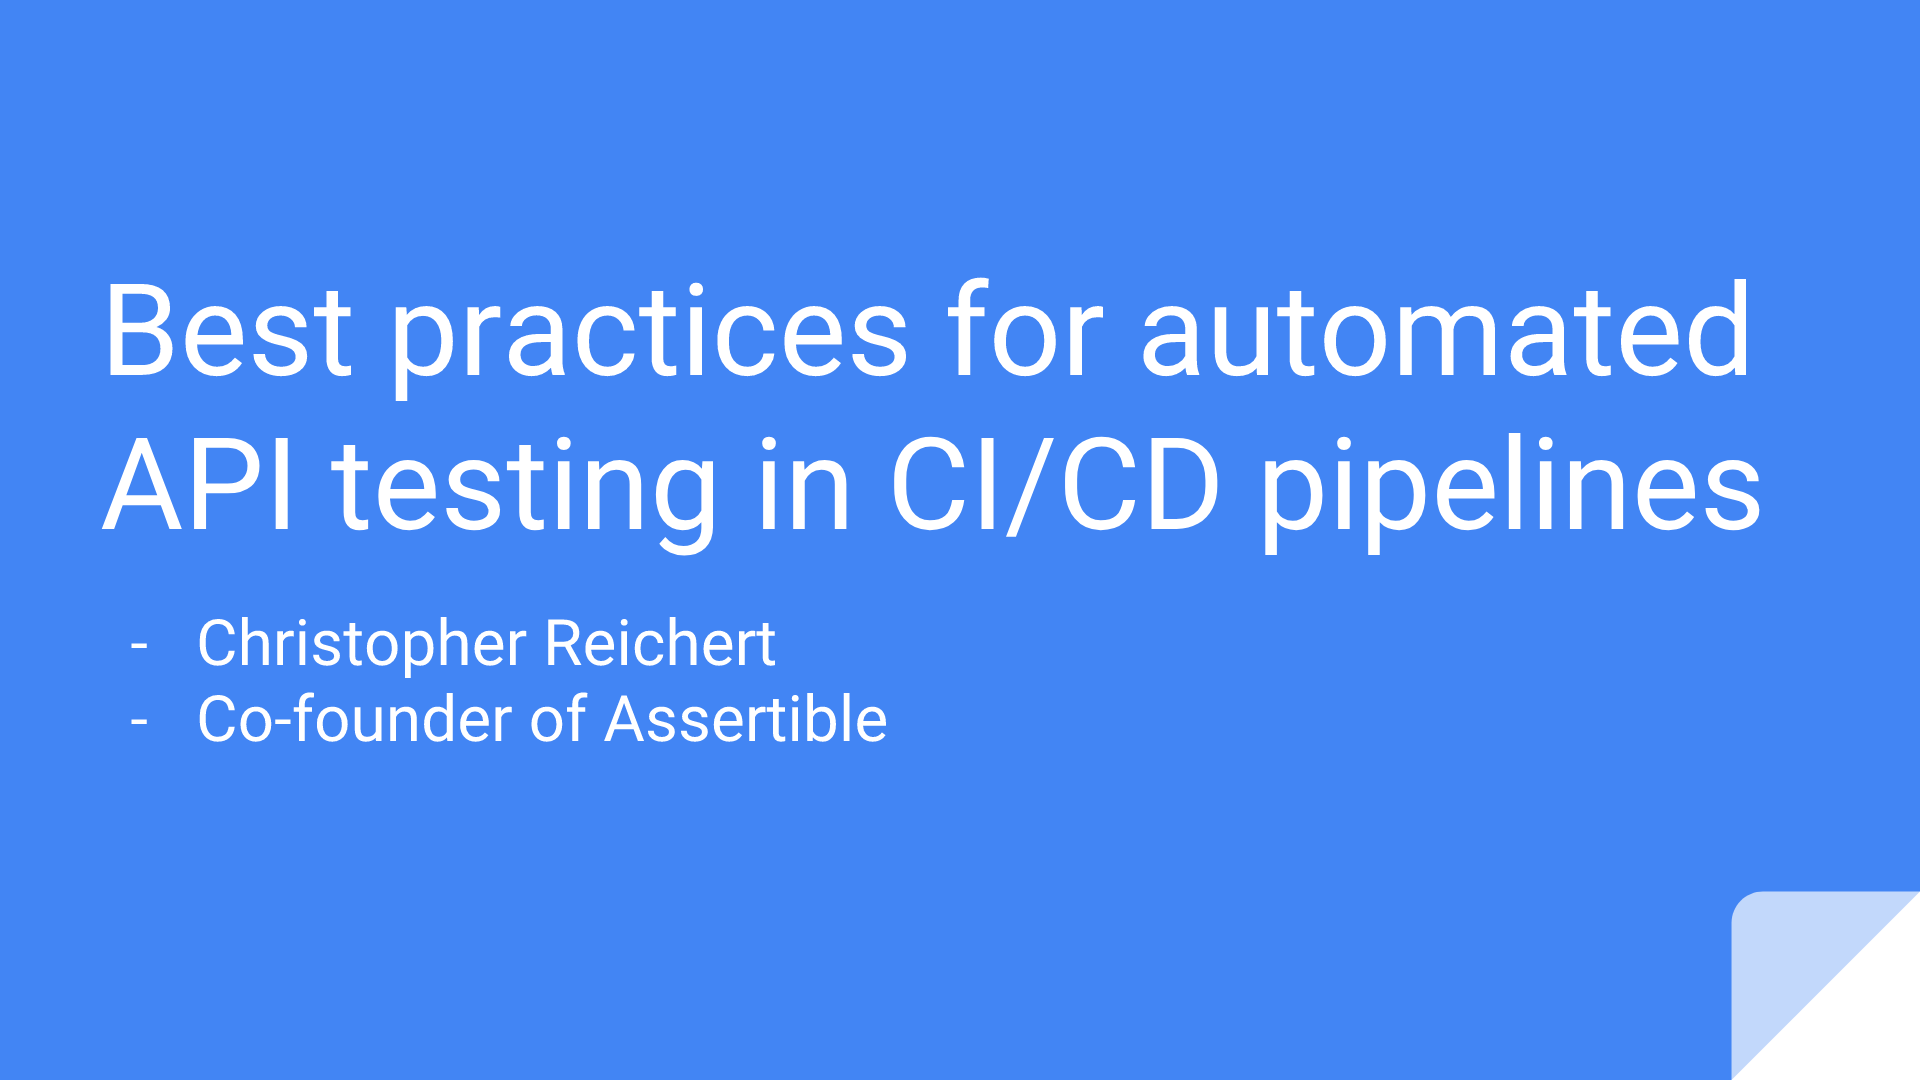 High level lessons for automated API testing in CI pipelines